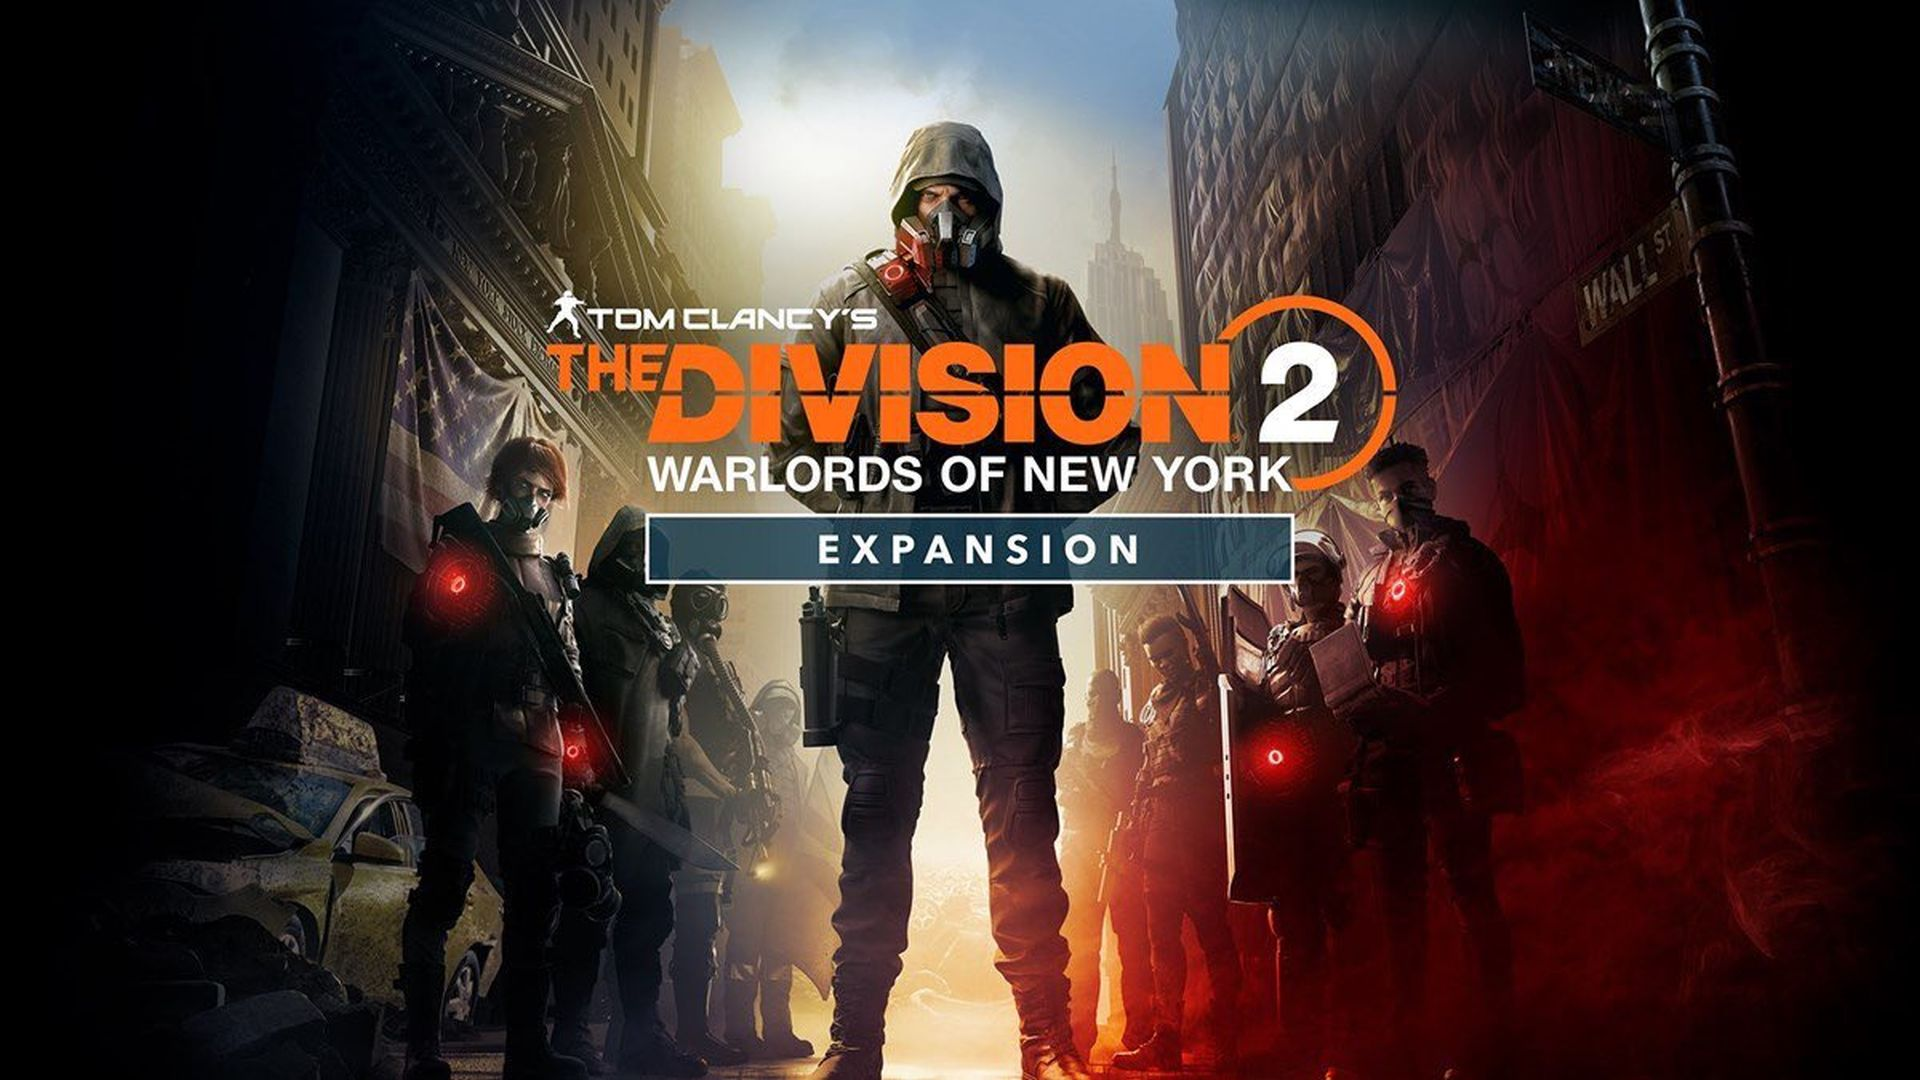 Ubisoft anuncia expansión Warlords of Newyork para The Division 2 GamersRD